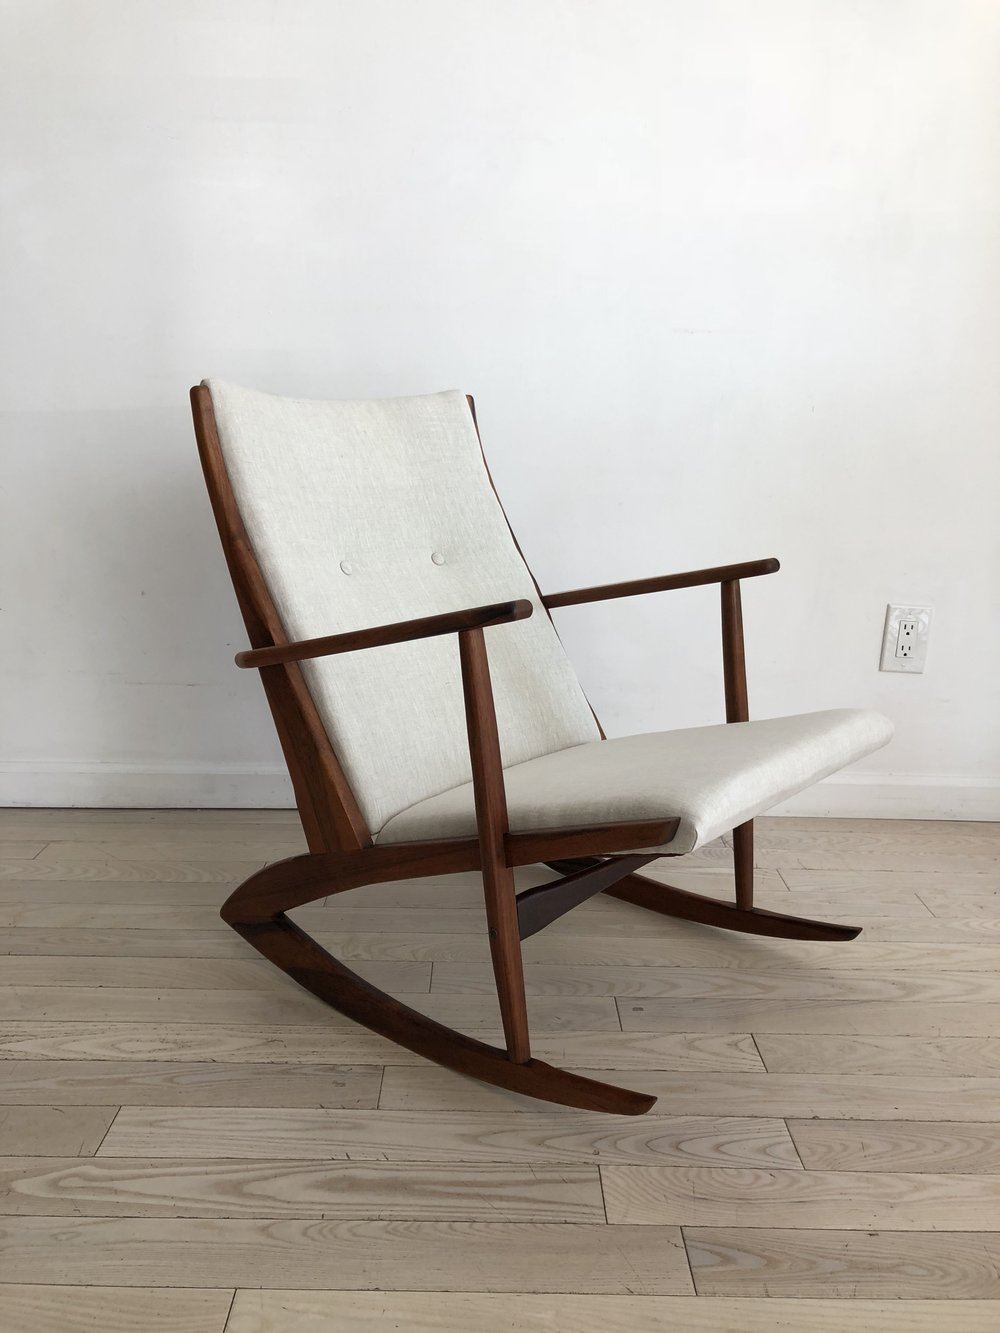 1958 Danish Rosewood Rocking Chair by Holger George Jensen